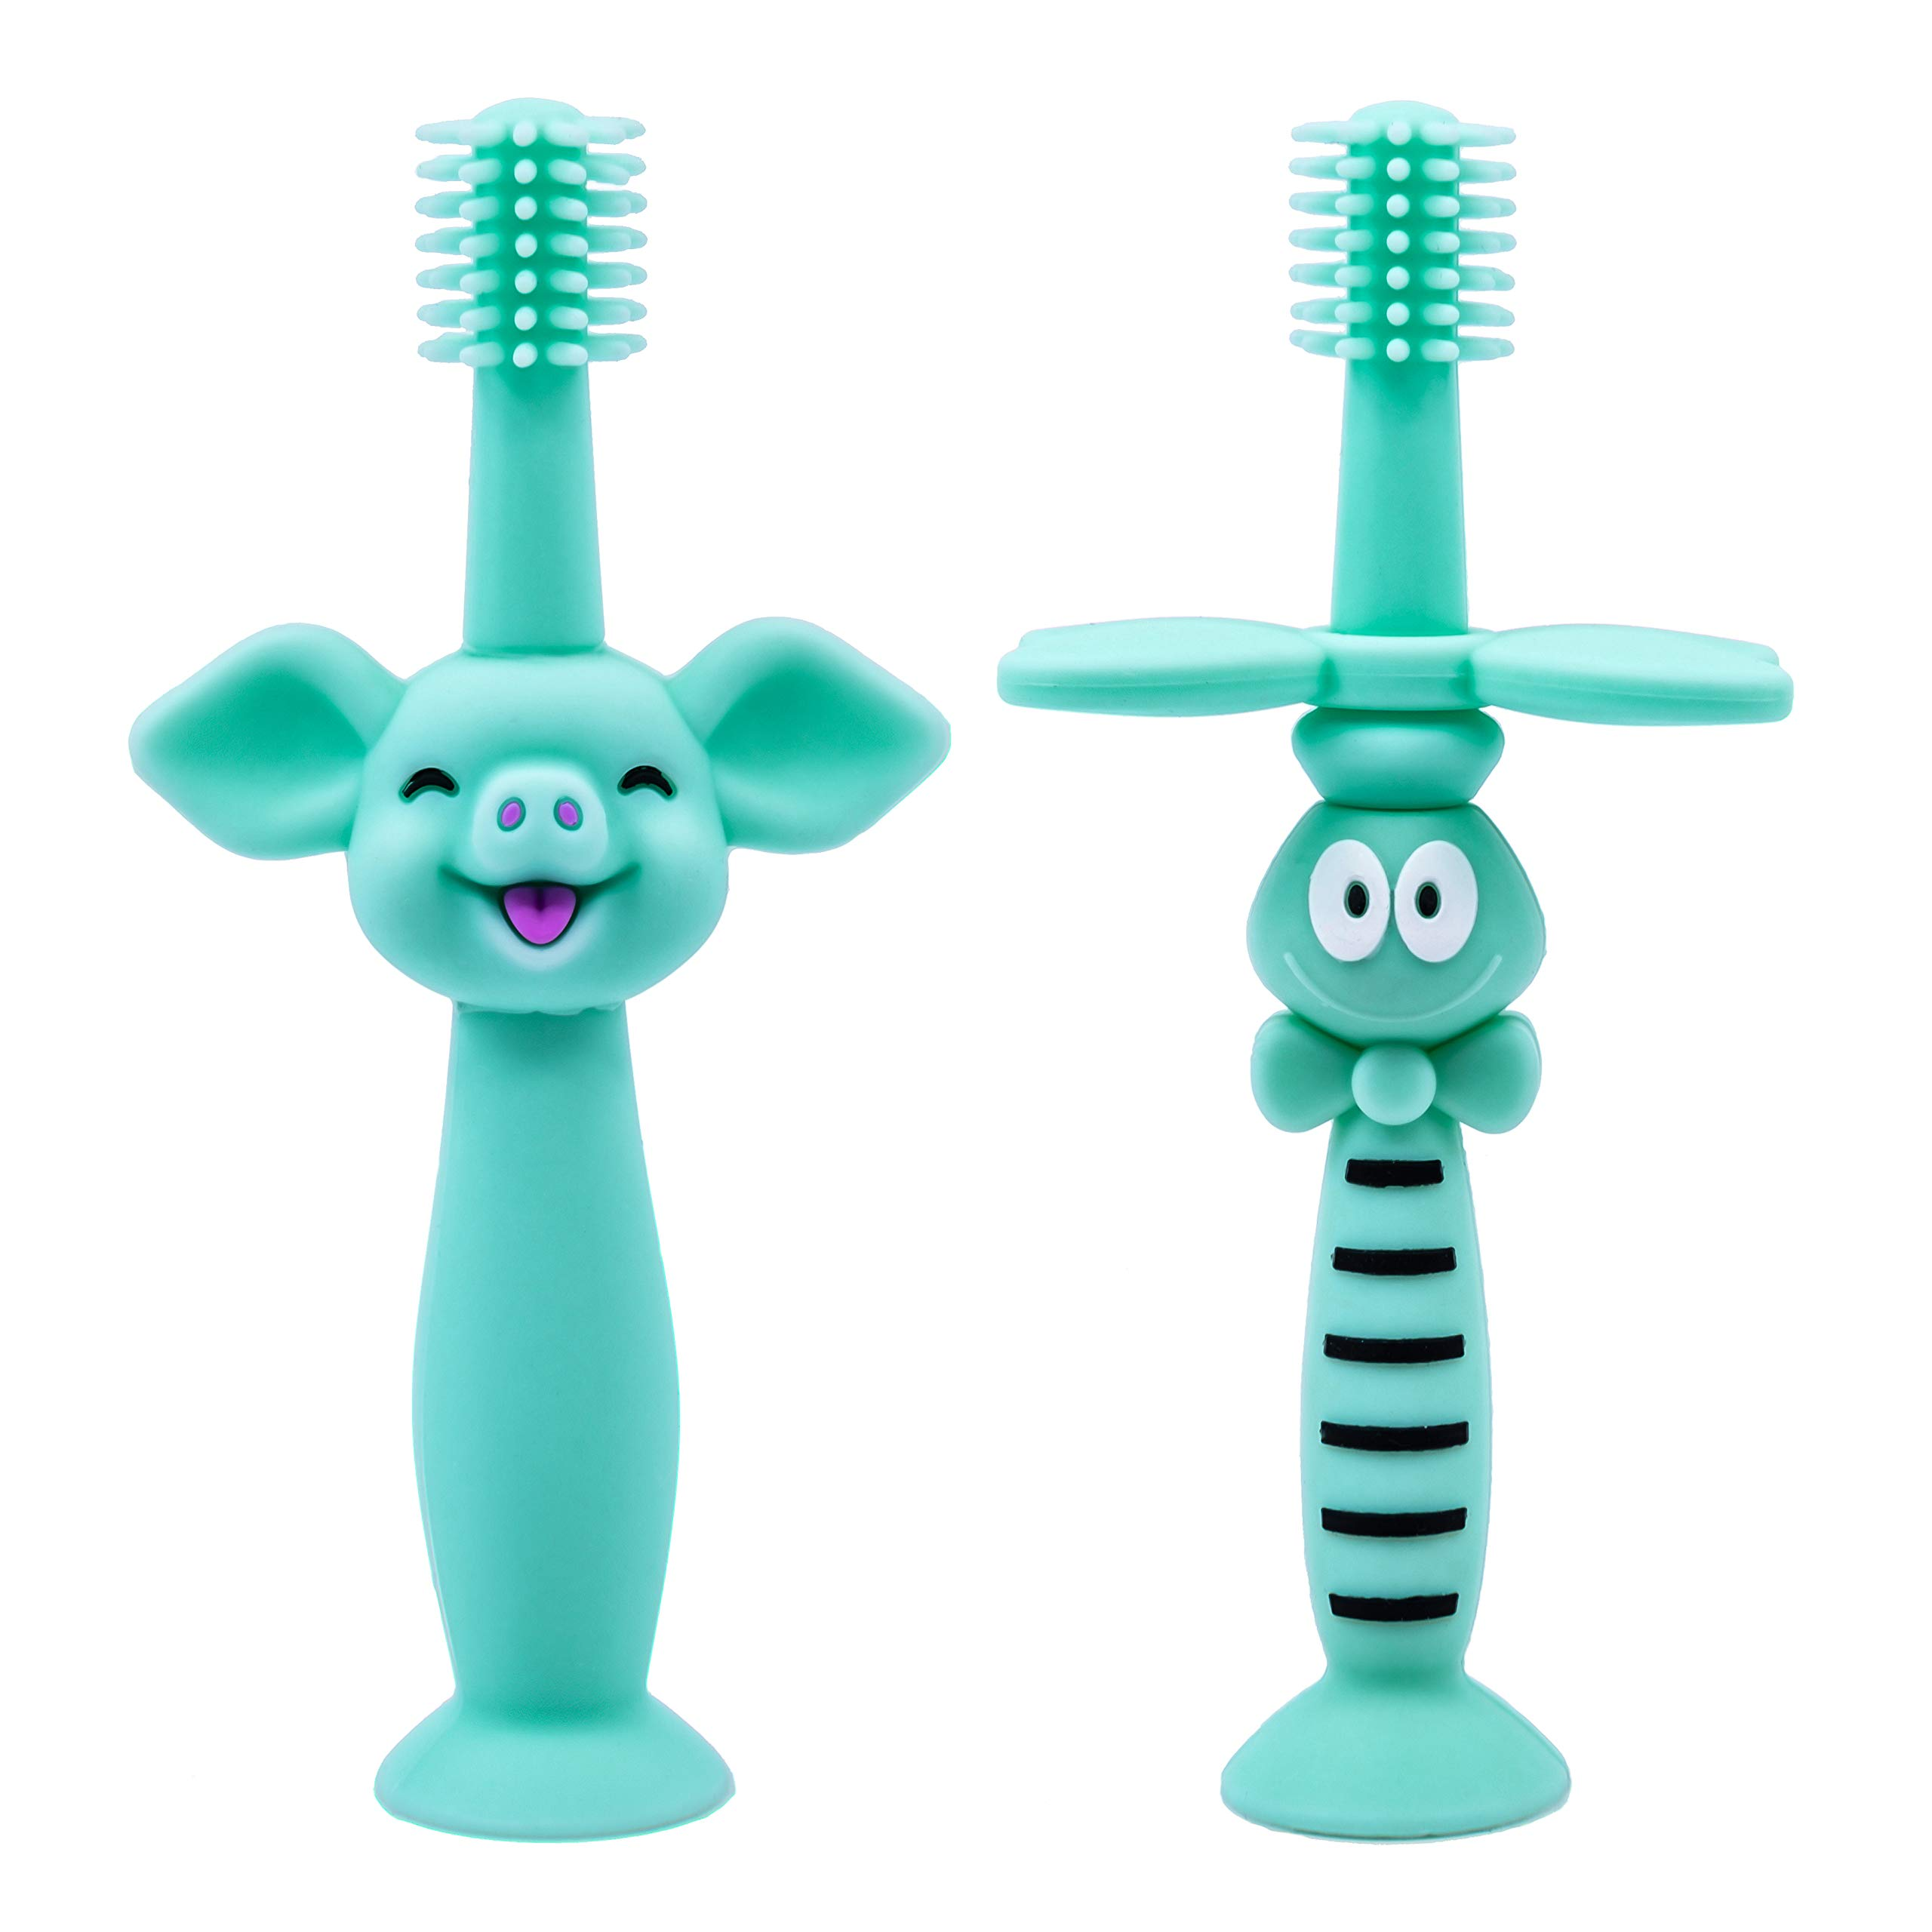 2pack STKYGOOD Baby Toothbrush /& Toddler Toothbrush for 0-2 Years Old with Teething Finger Handle BPA Free Infant Toothbrush Teether Blue//Pink